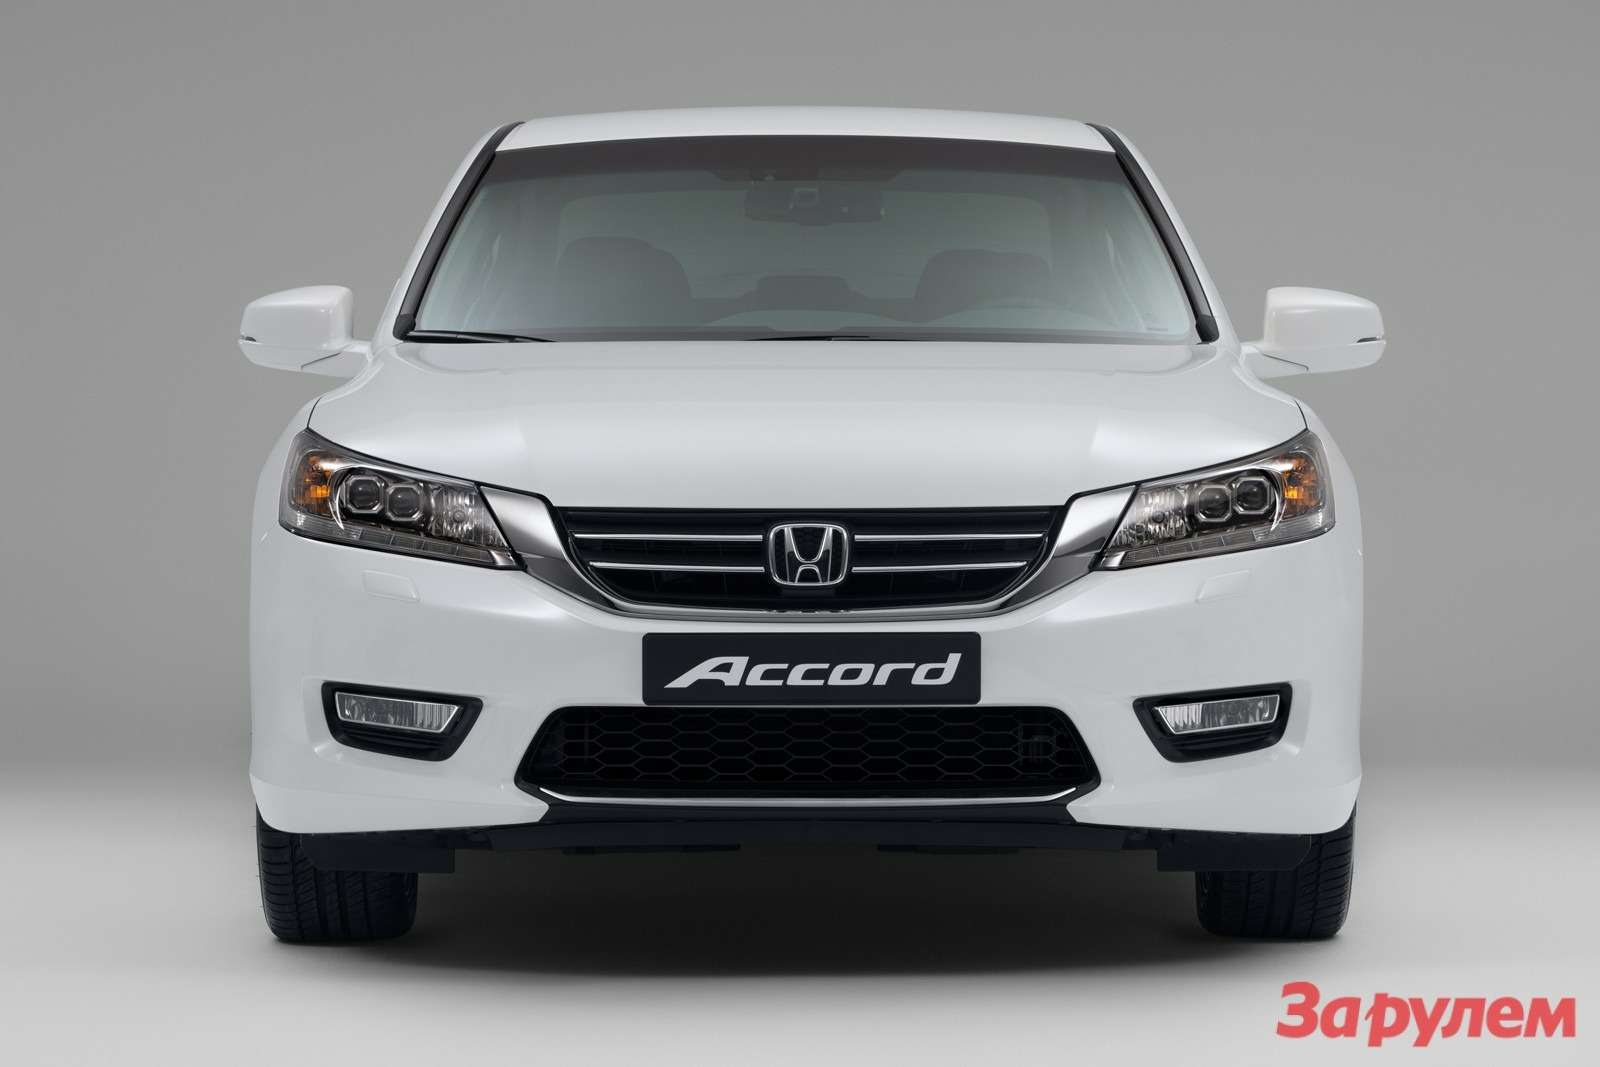 accord front